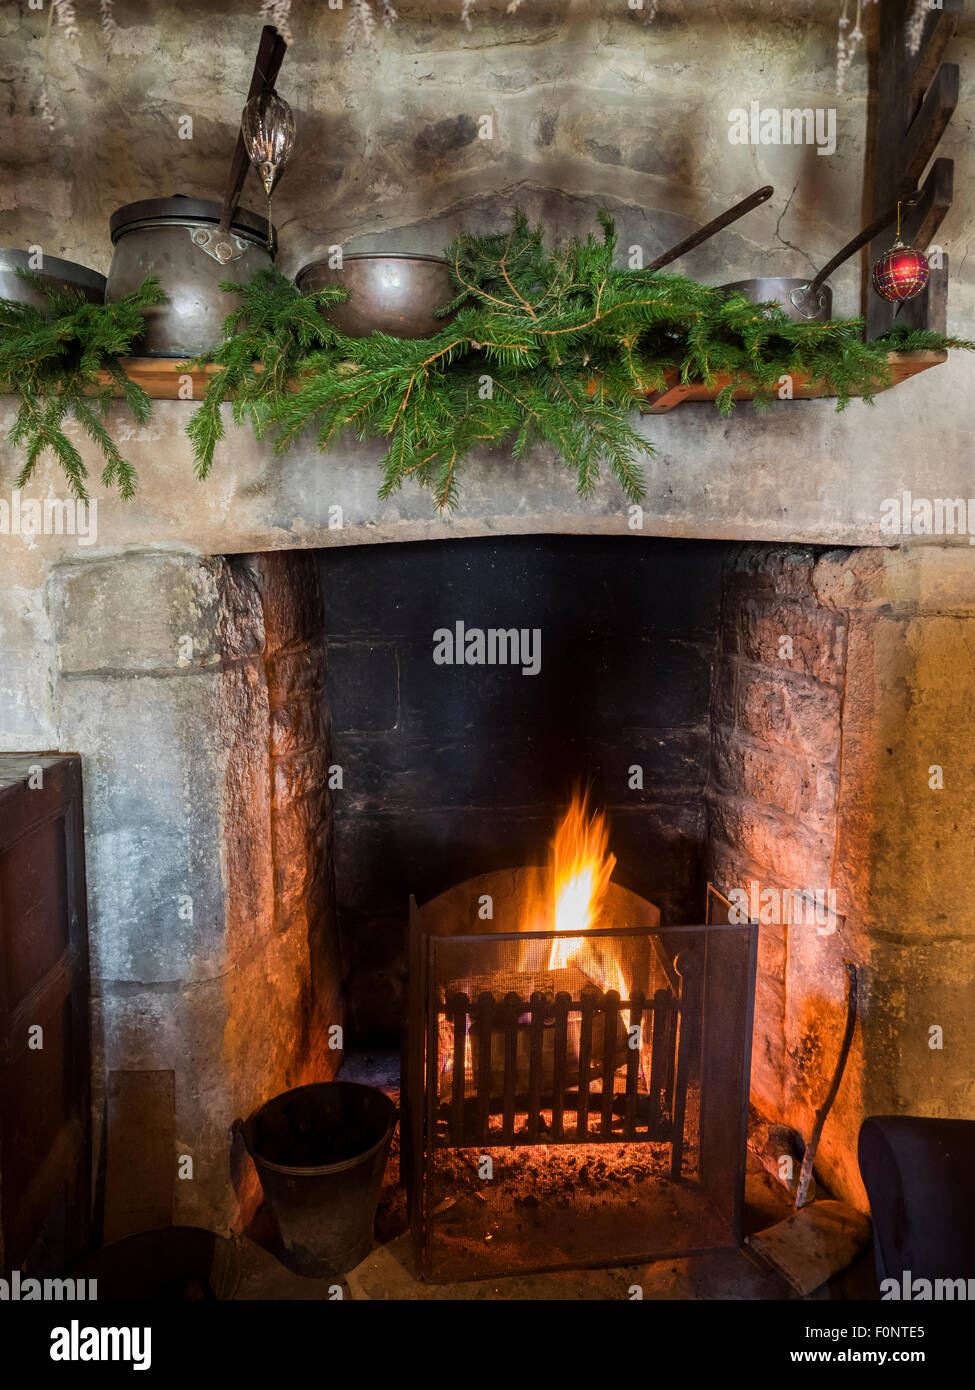 Medieval Christmas decorations over fireplace during Tudor ...